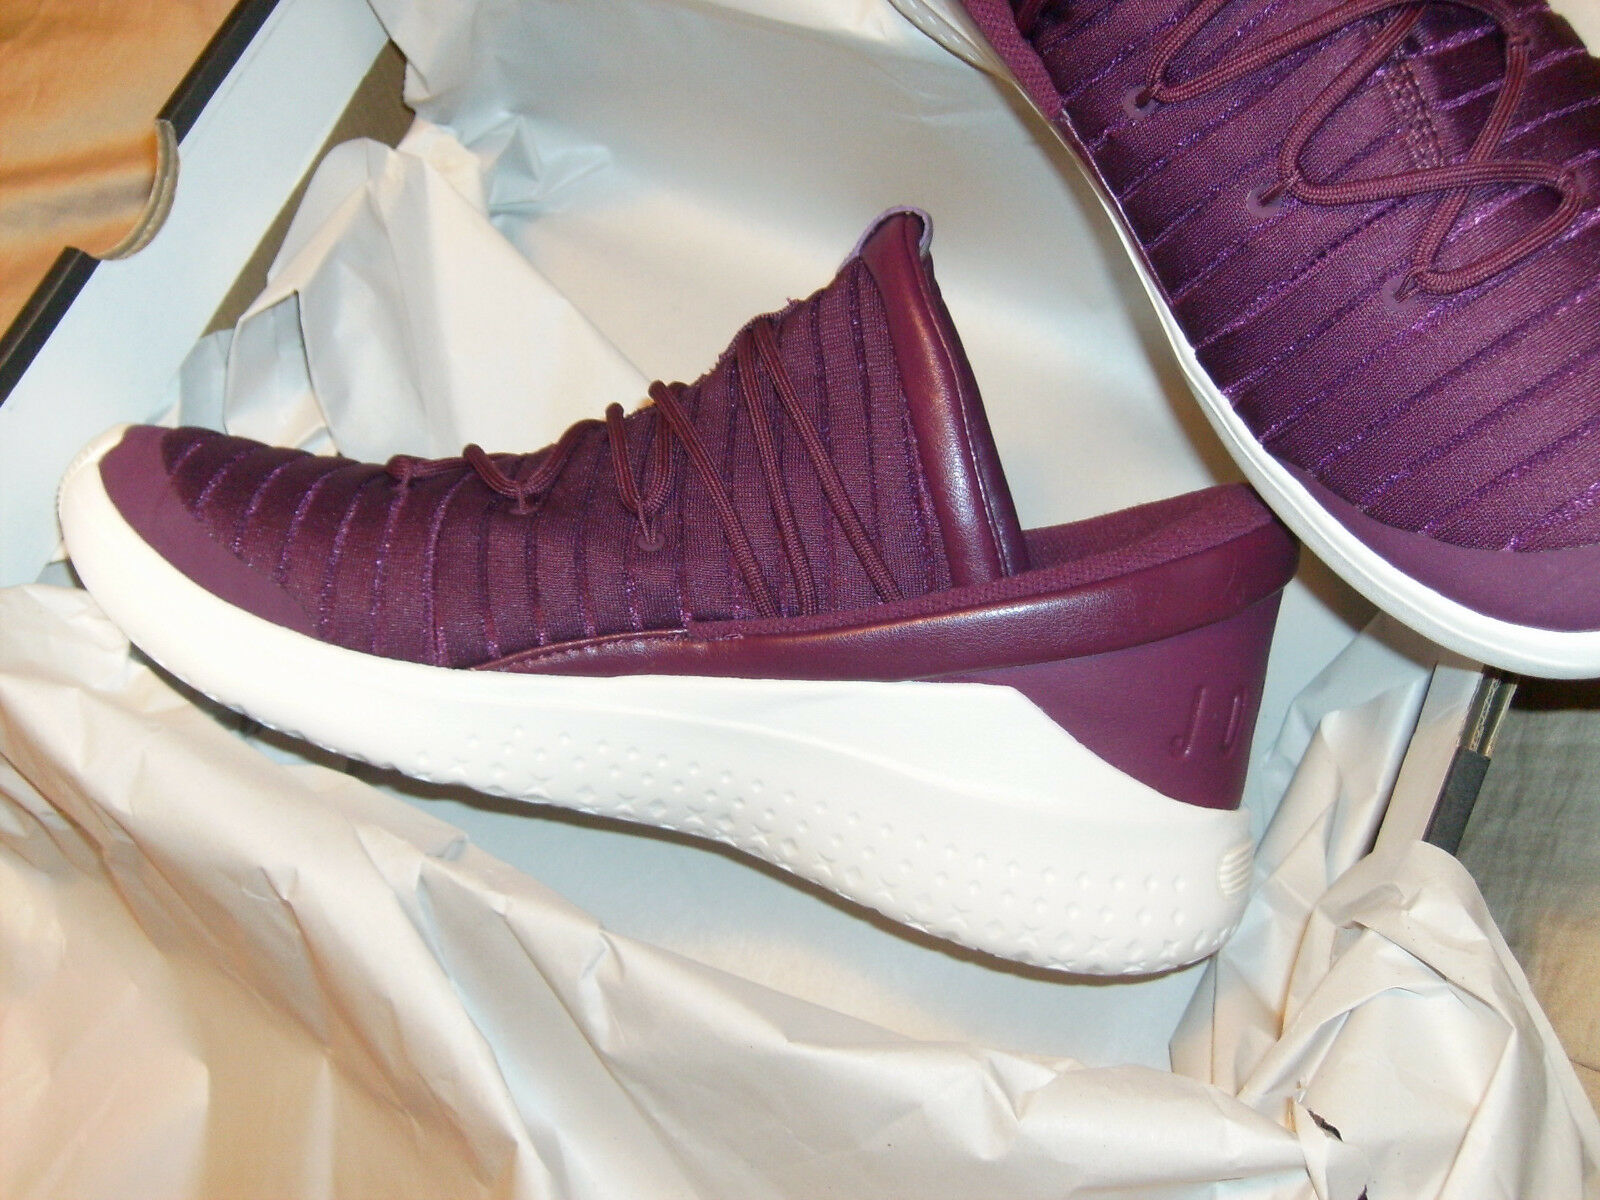 BRAND NEW JORDAN FLIGHT LUXE SZ 10.5 BOEDEAUX WINE BERRY 919175 637 MIDTOP